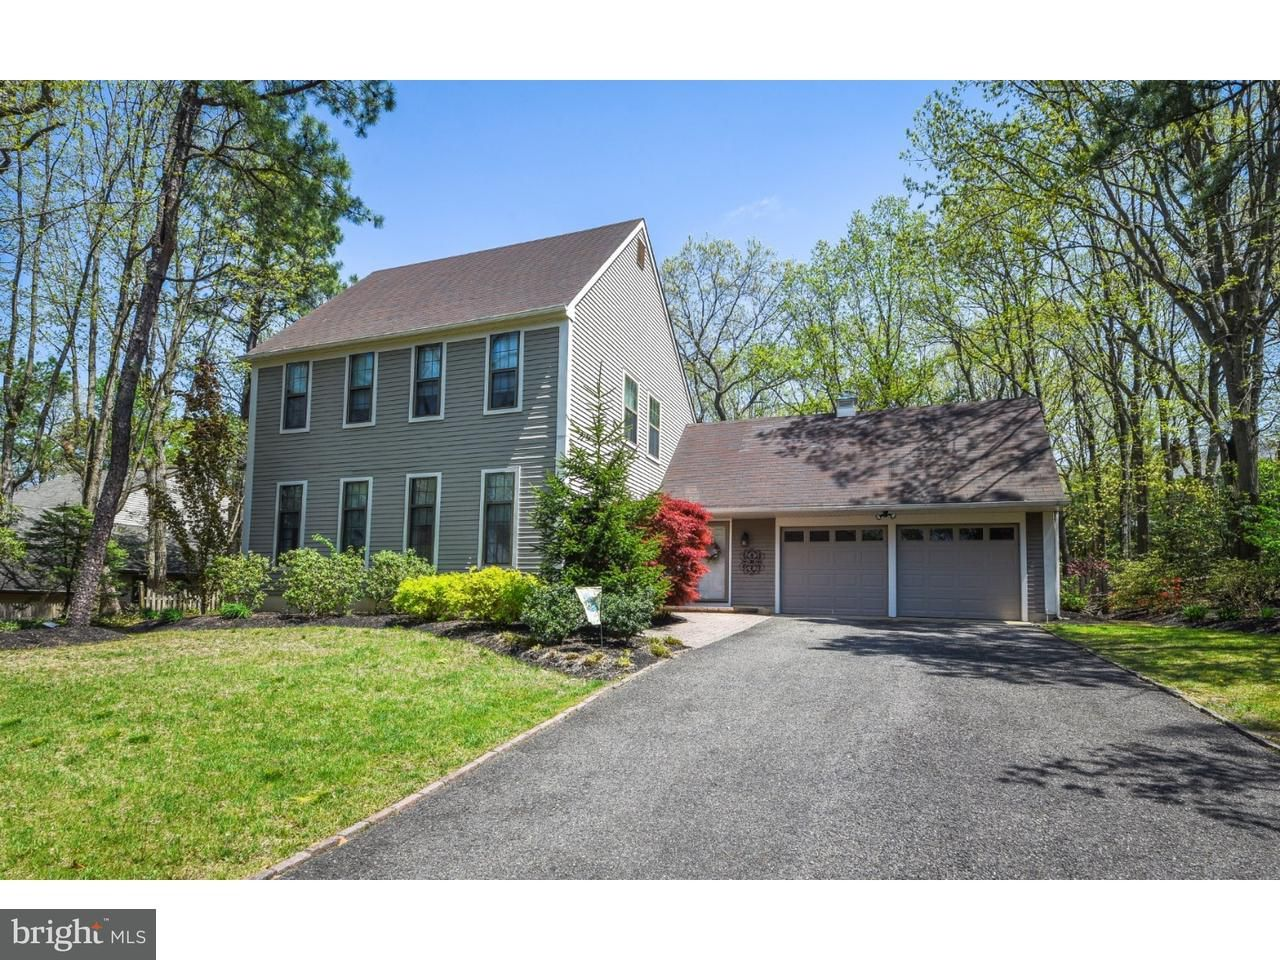 7 Sherwood Ln For Sale Voorhees, NJ Trulia (With